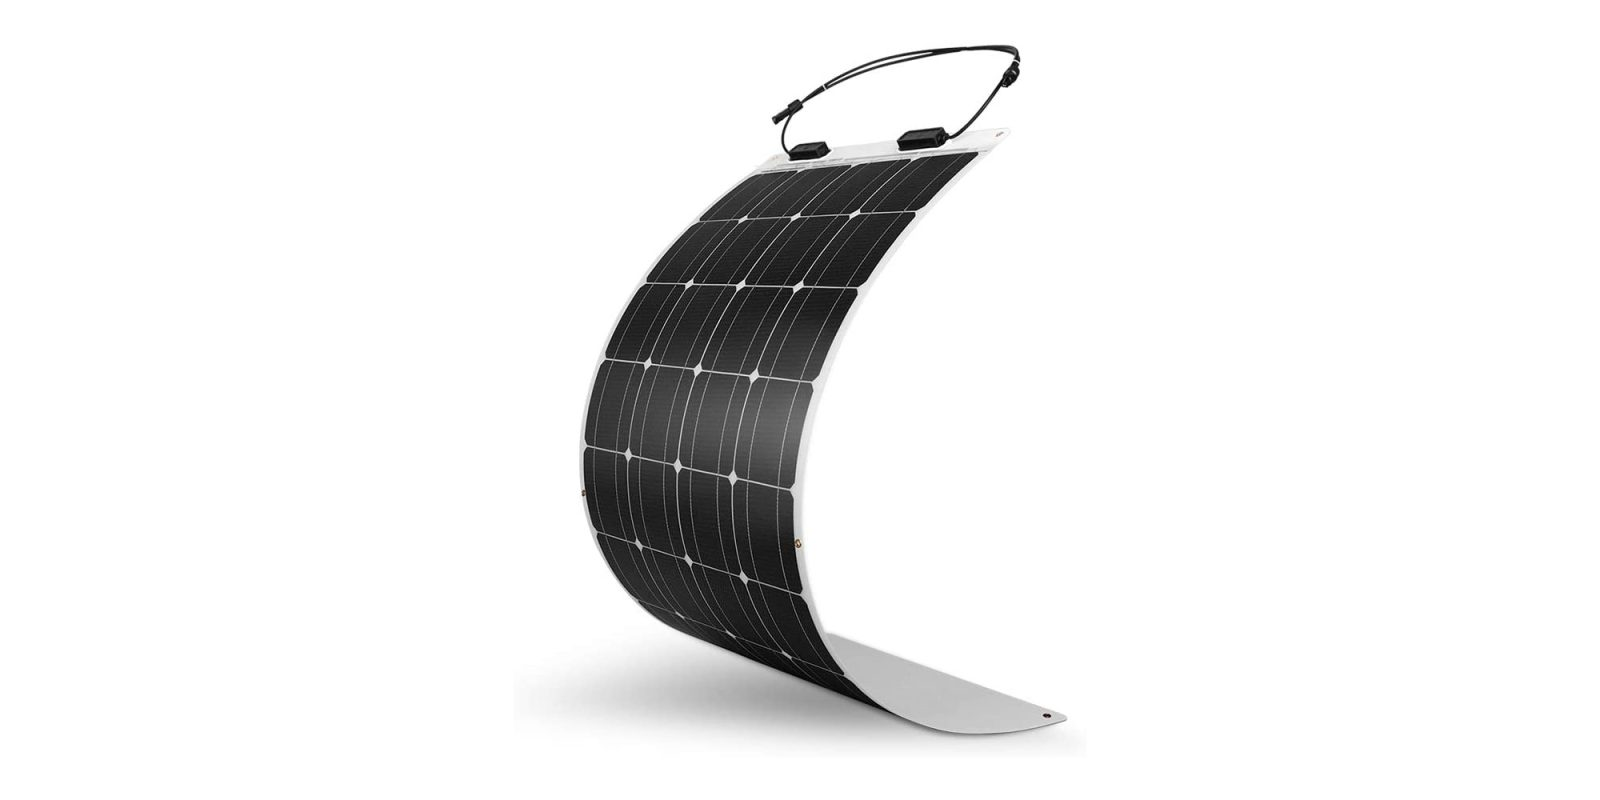 Renogy's 100W flexible solar panel is a road trip must at 5, more in New Green Deals